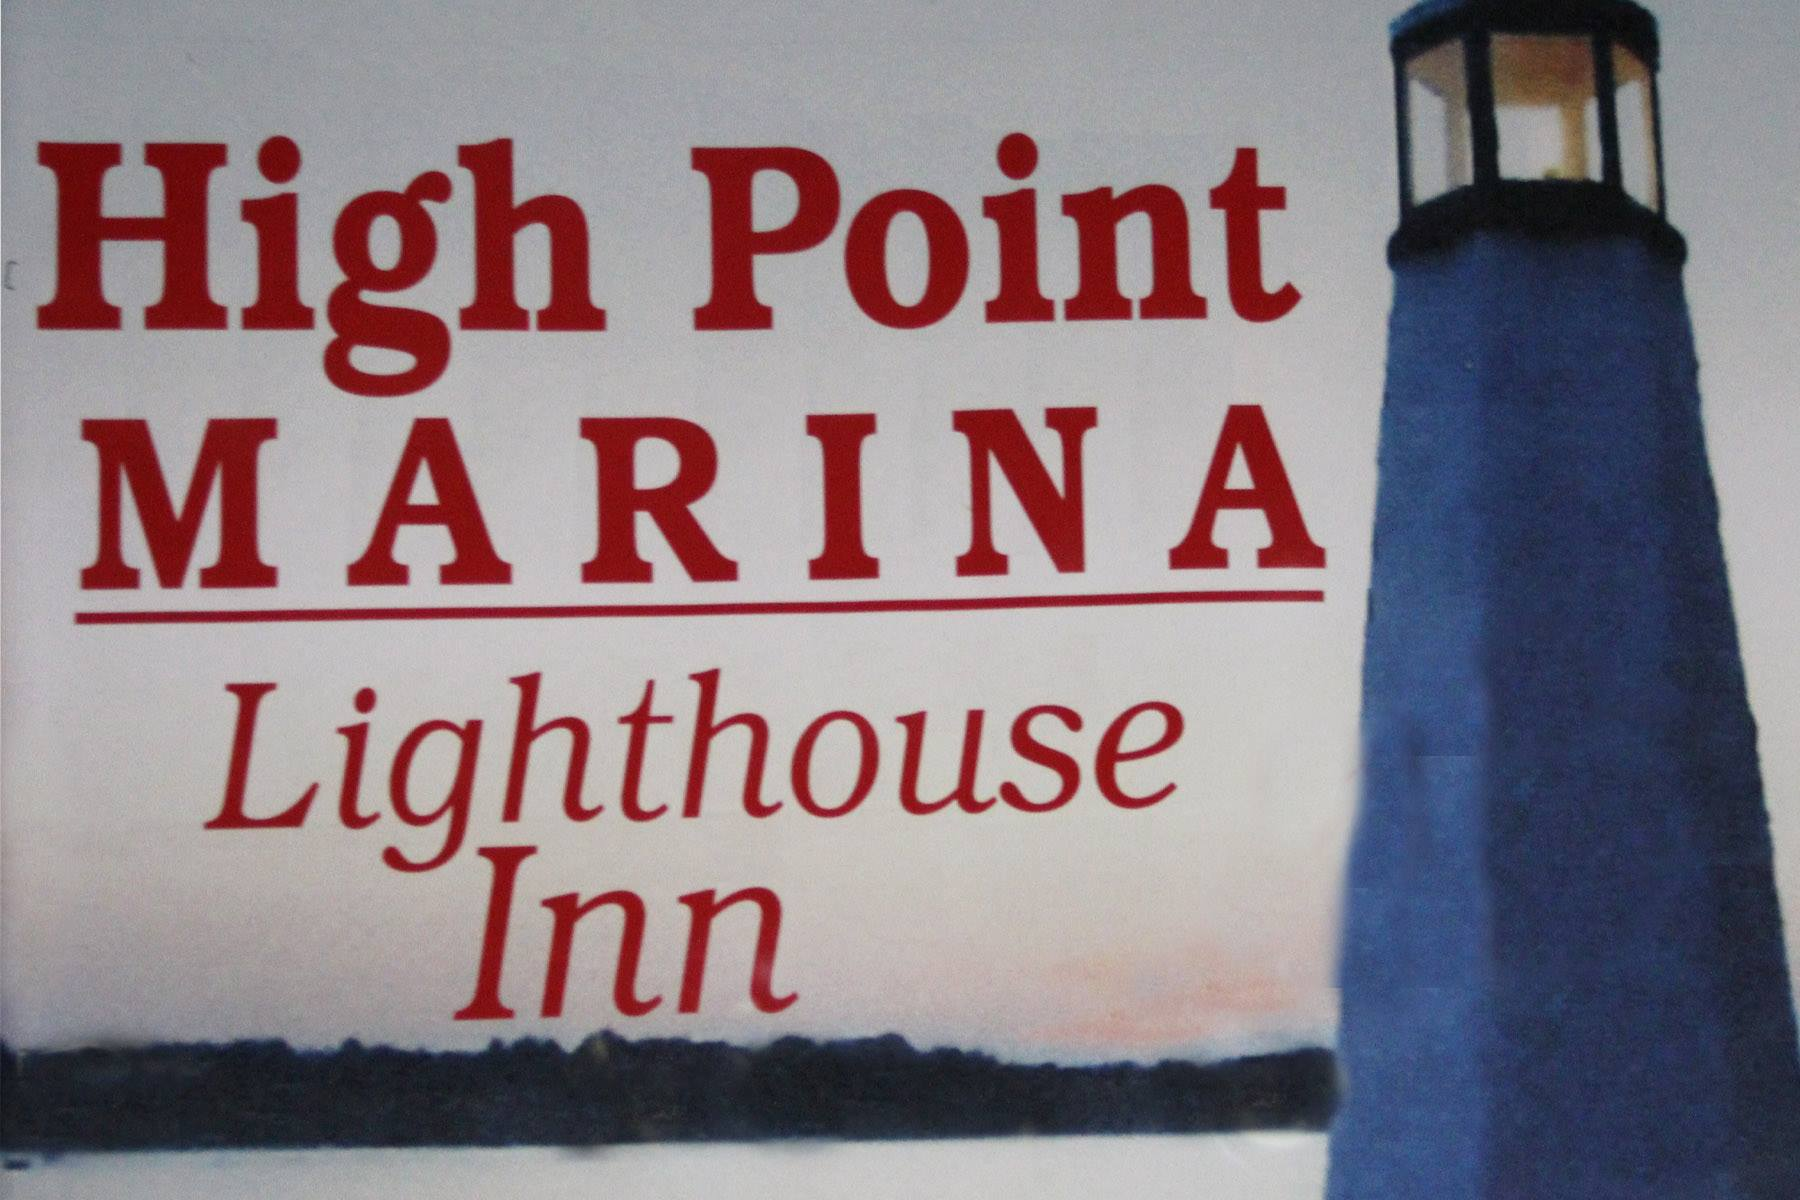 Highpoint Marina and Lighthouse Inn